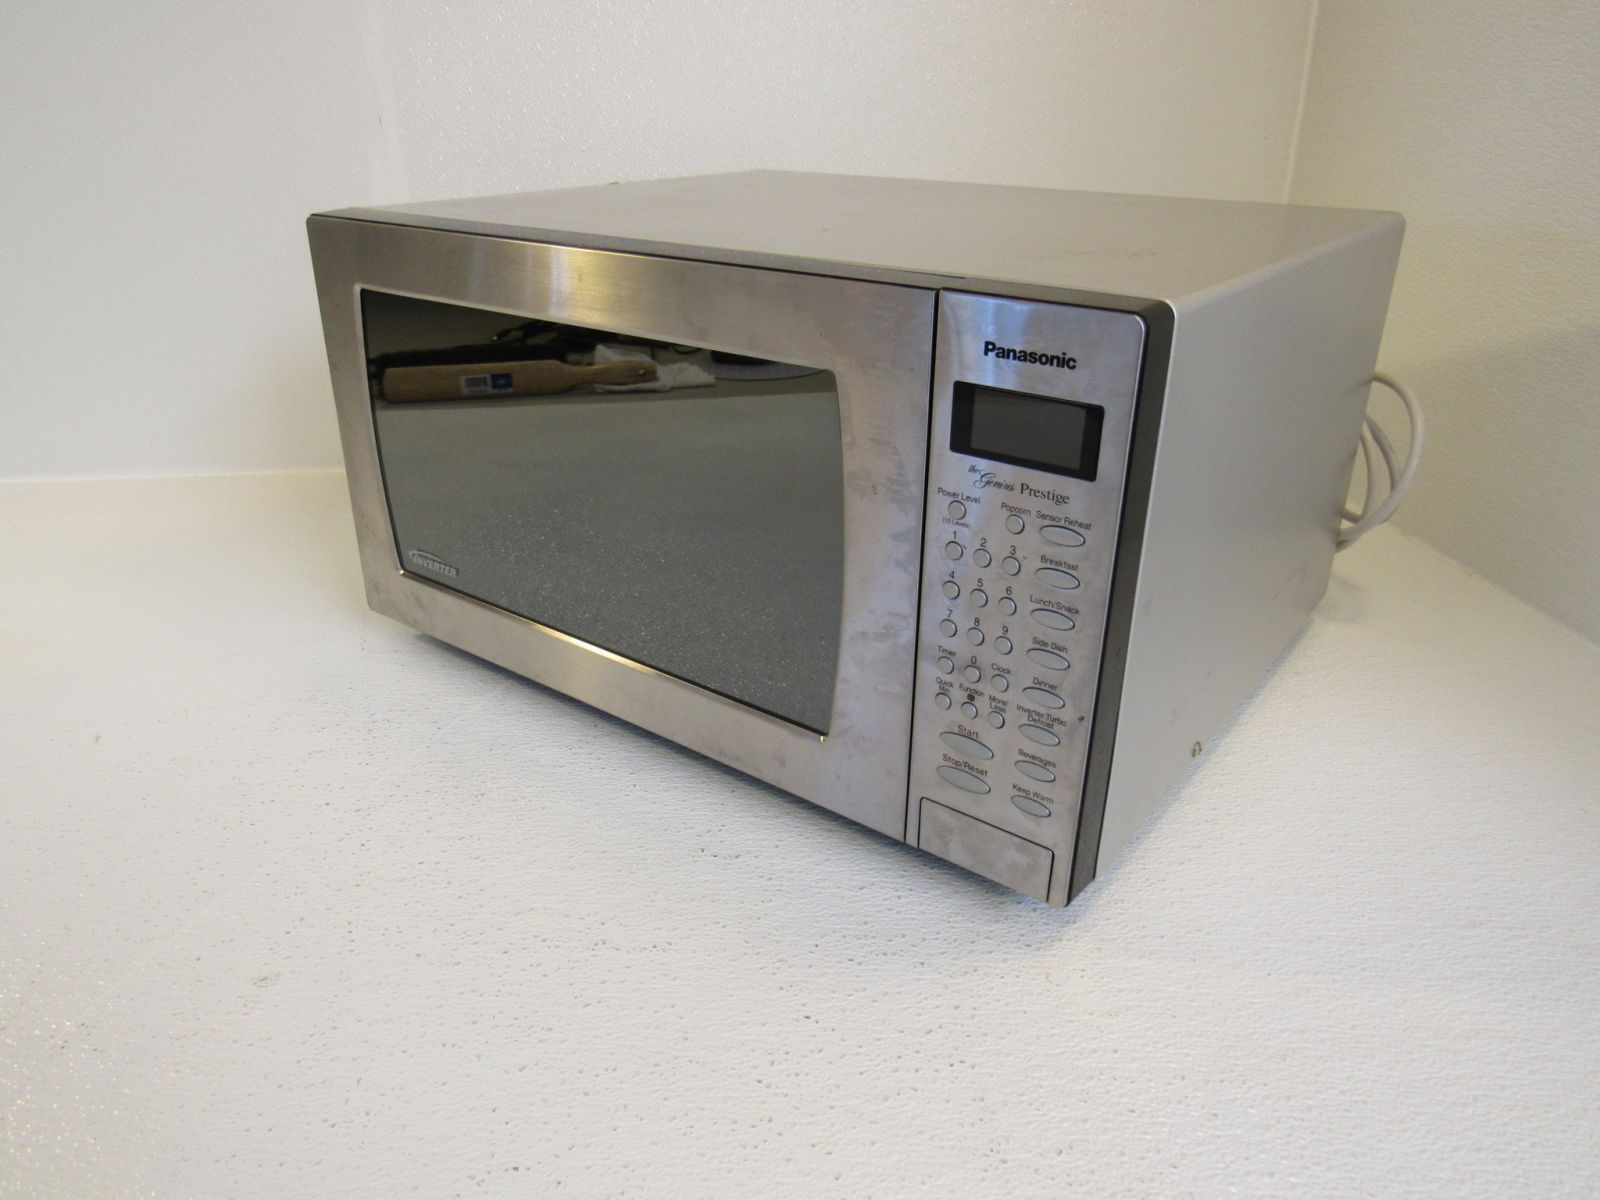 Panasonic Countertop Turntable Microwave Oven U2 Stainless 1250W NN-SN797S